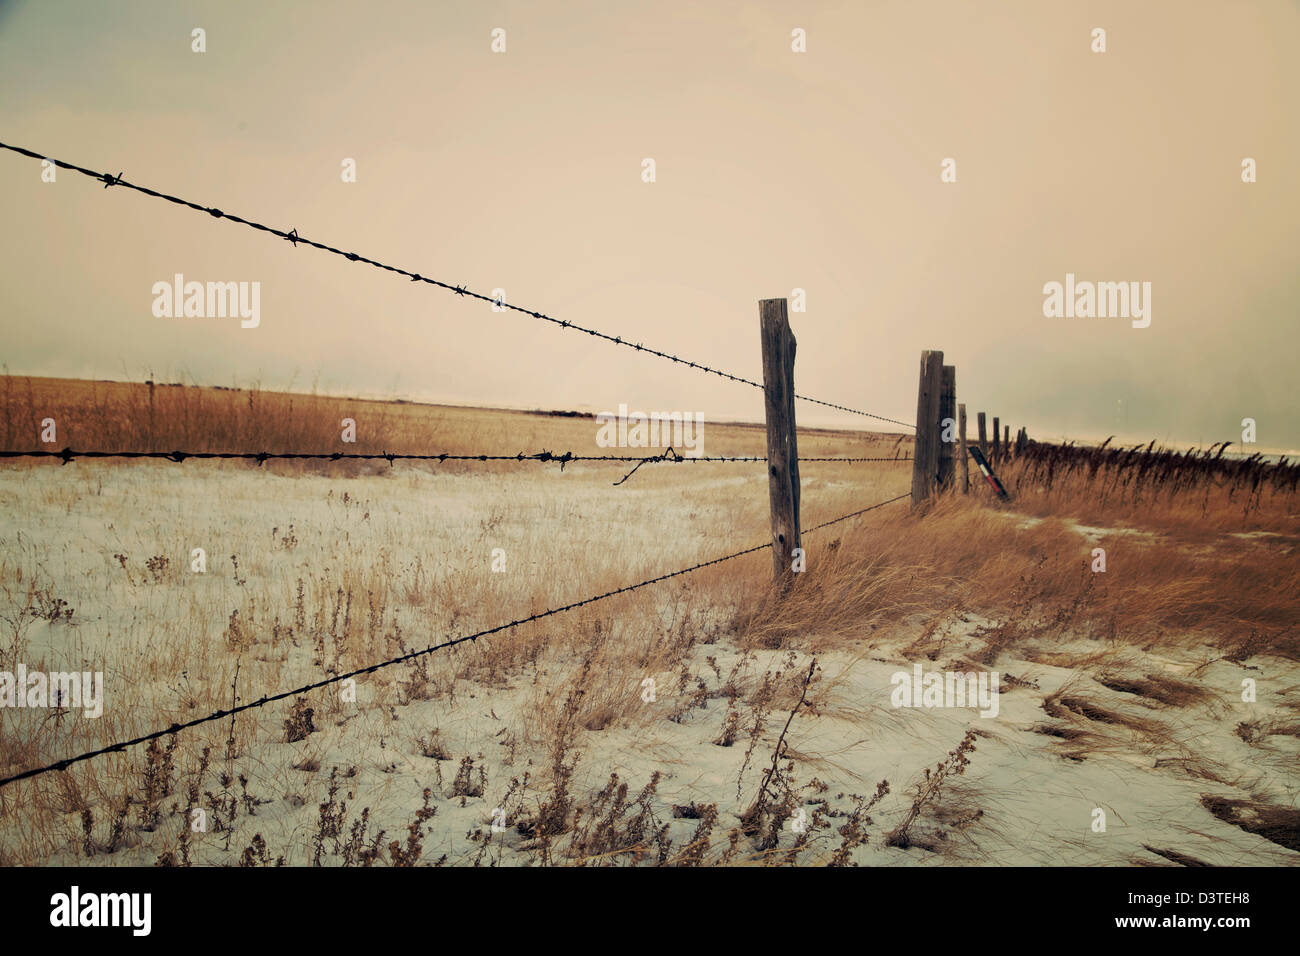 Prairie fence, early winter morning. Barb wire and fence posts, golden grass, and early morning sunlight. - Stock Image